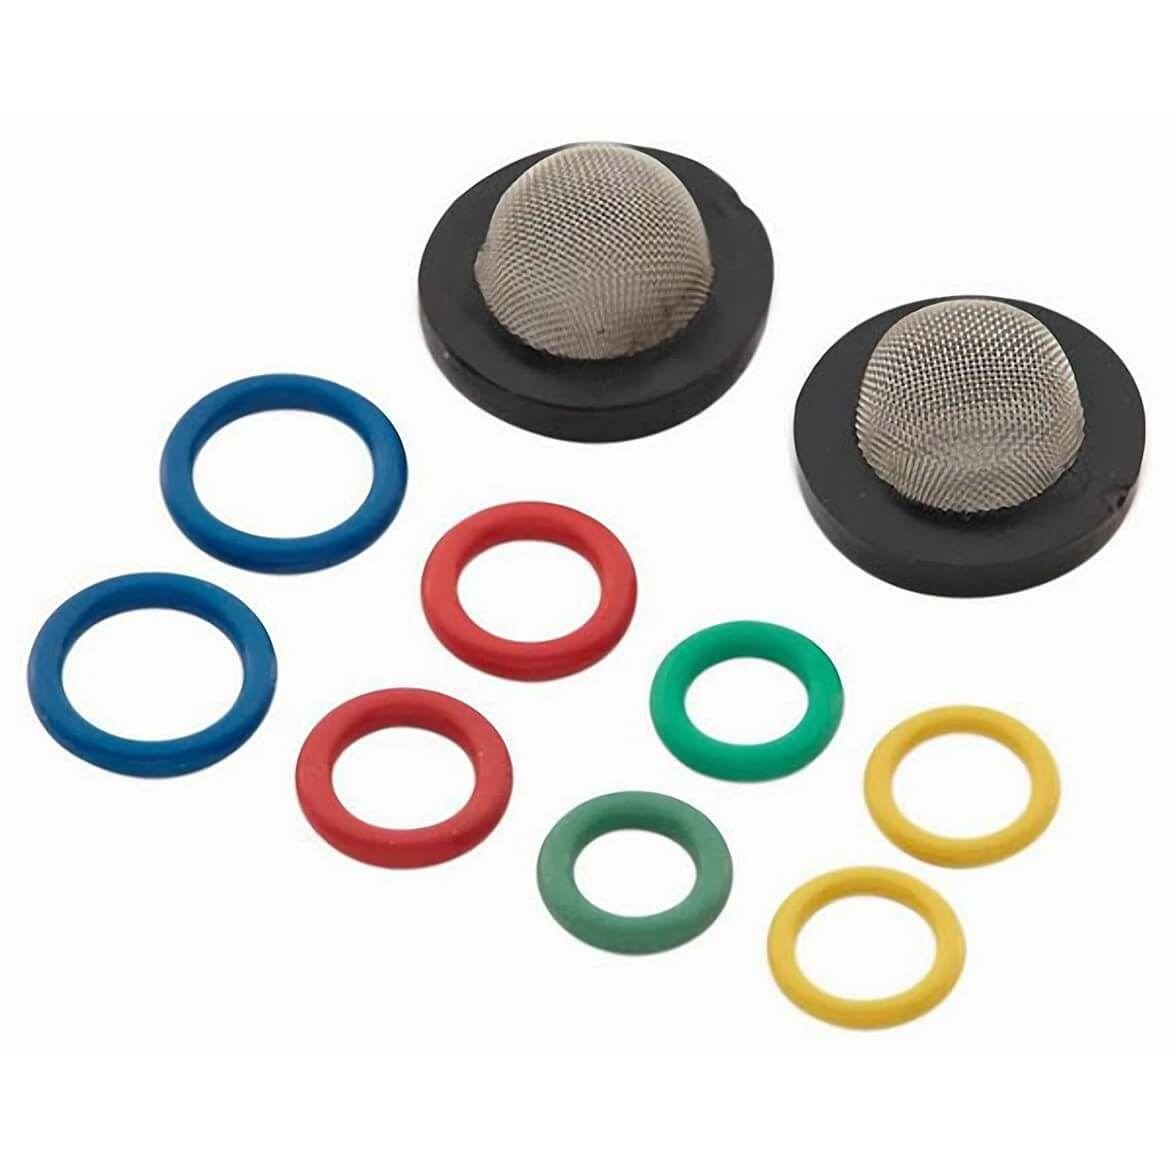 Generac GNC-6658 Replacement Inlet Water Filters & O-Ring Seals Kit For Power Washer